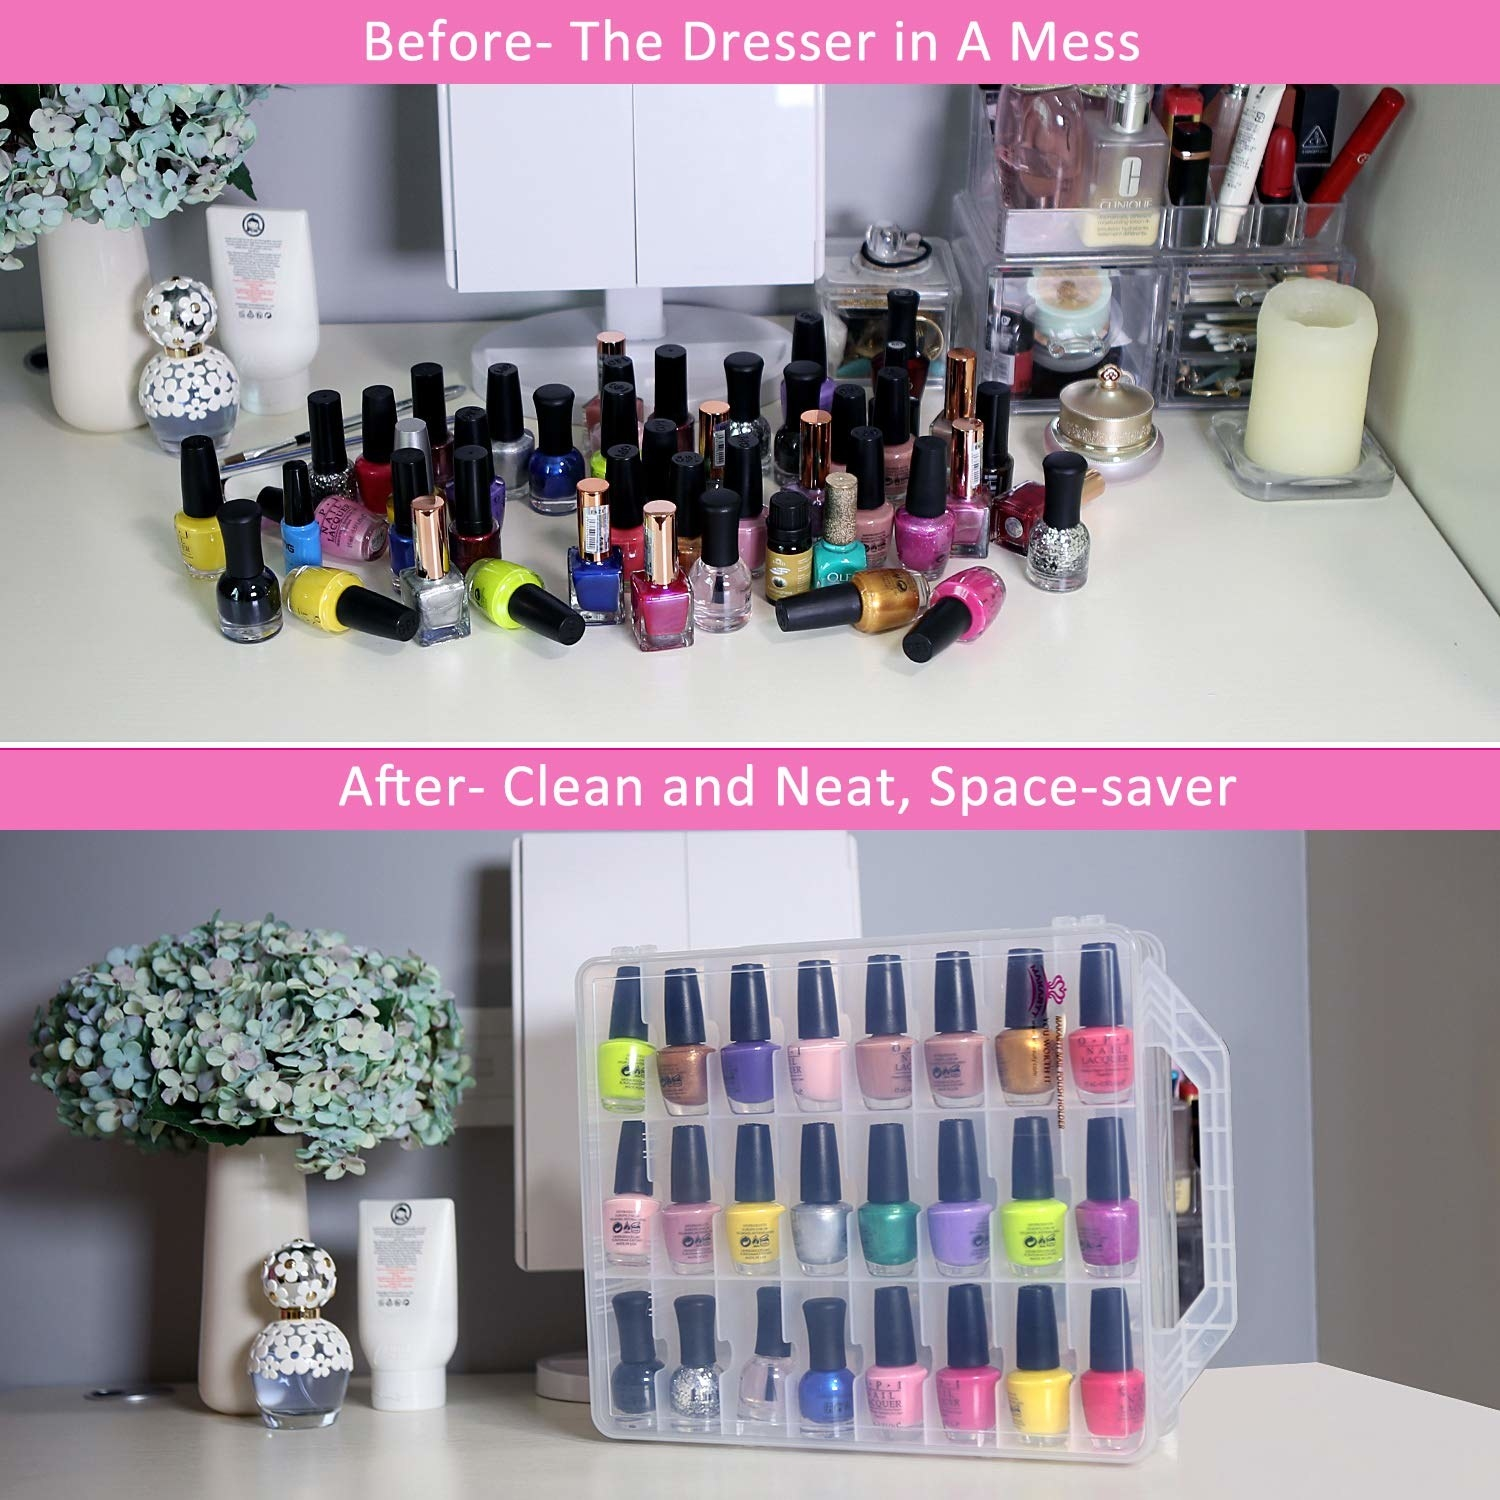 before pic of cluttered nail polish bottles and after of them neatly filed away in this organizer